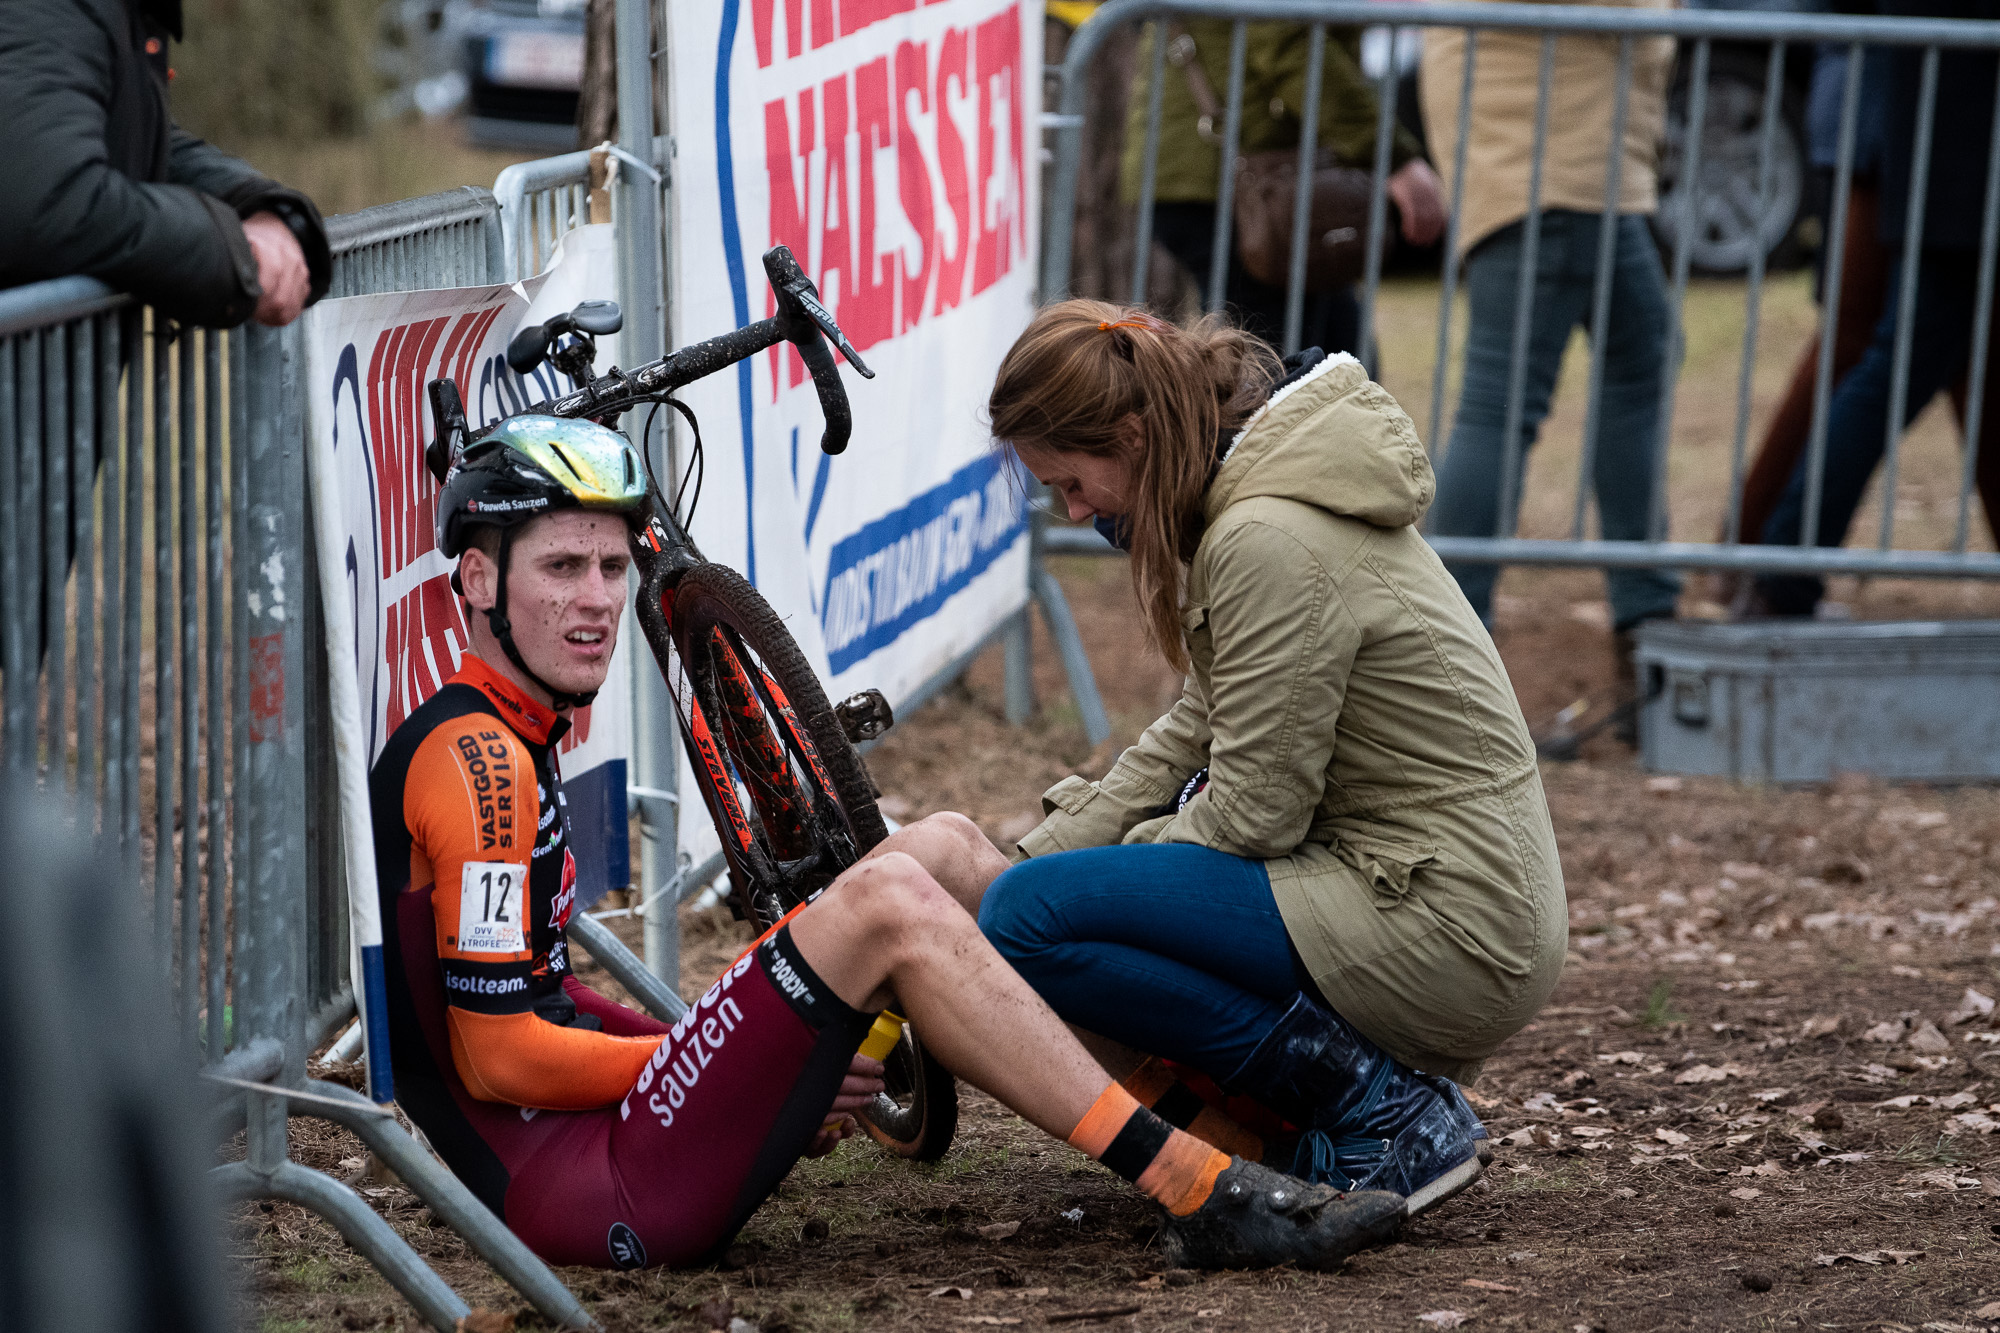 Jens Adams after the finish. Adams finished the race in 15th place.